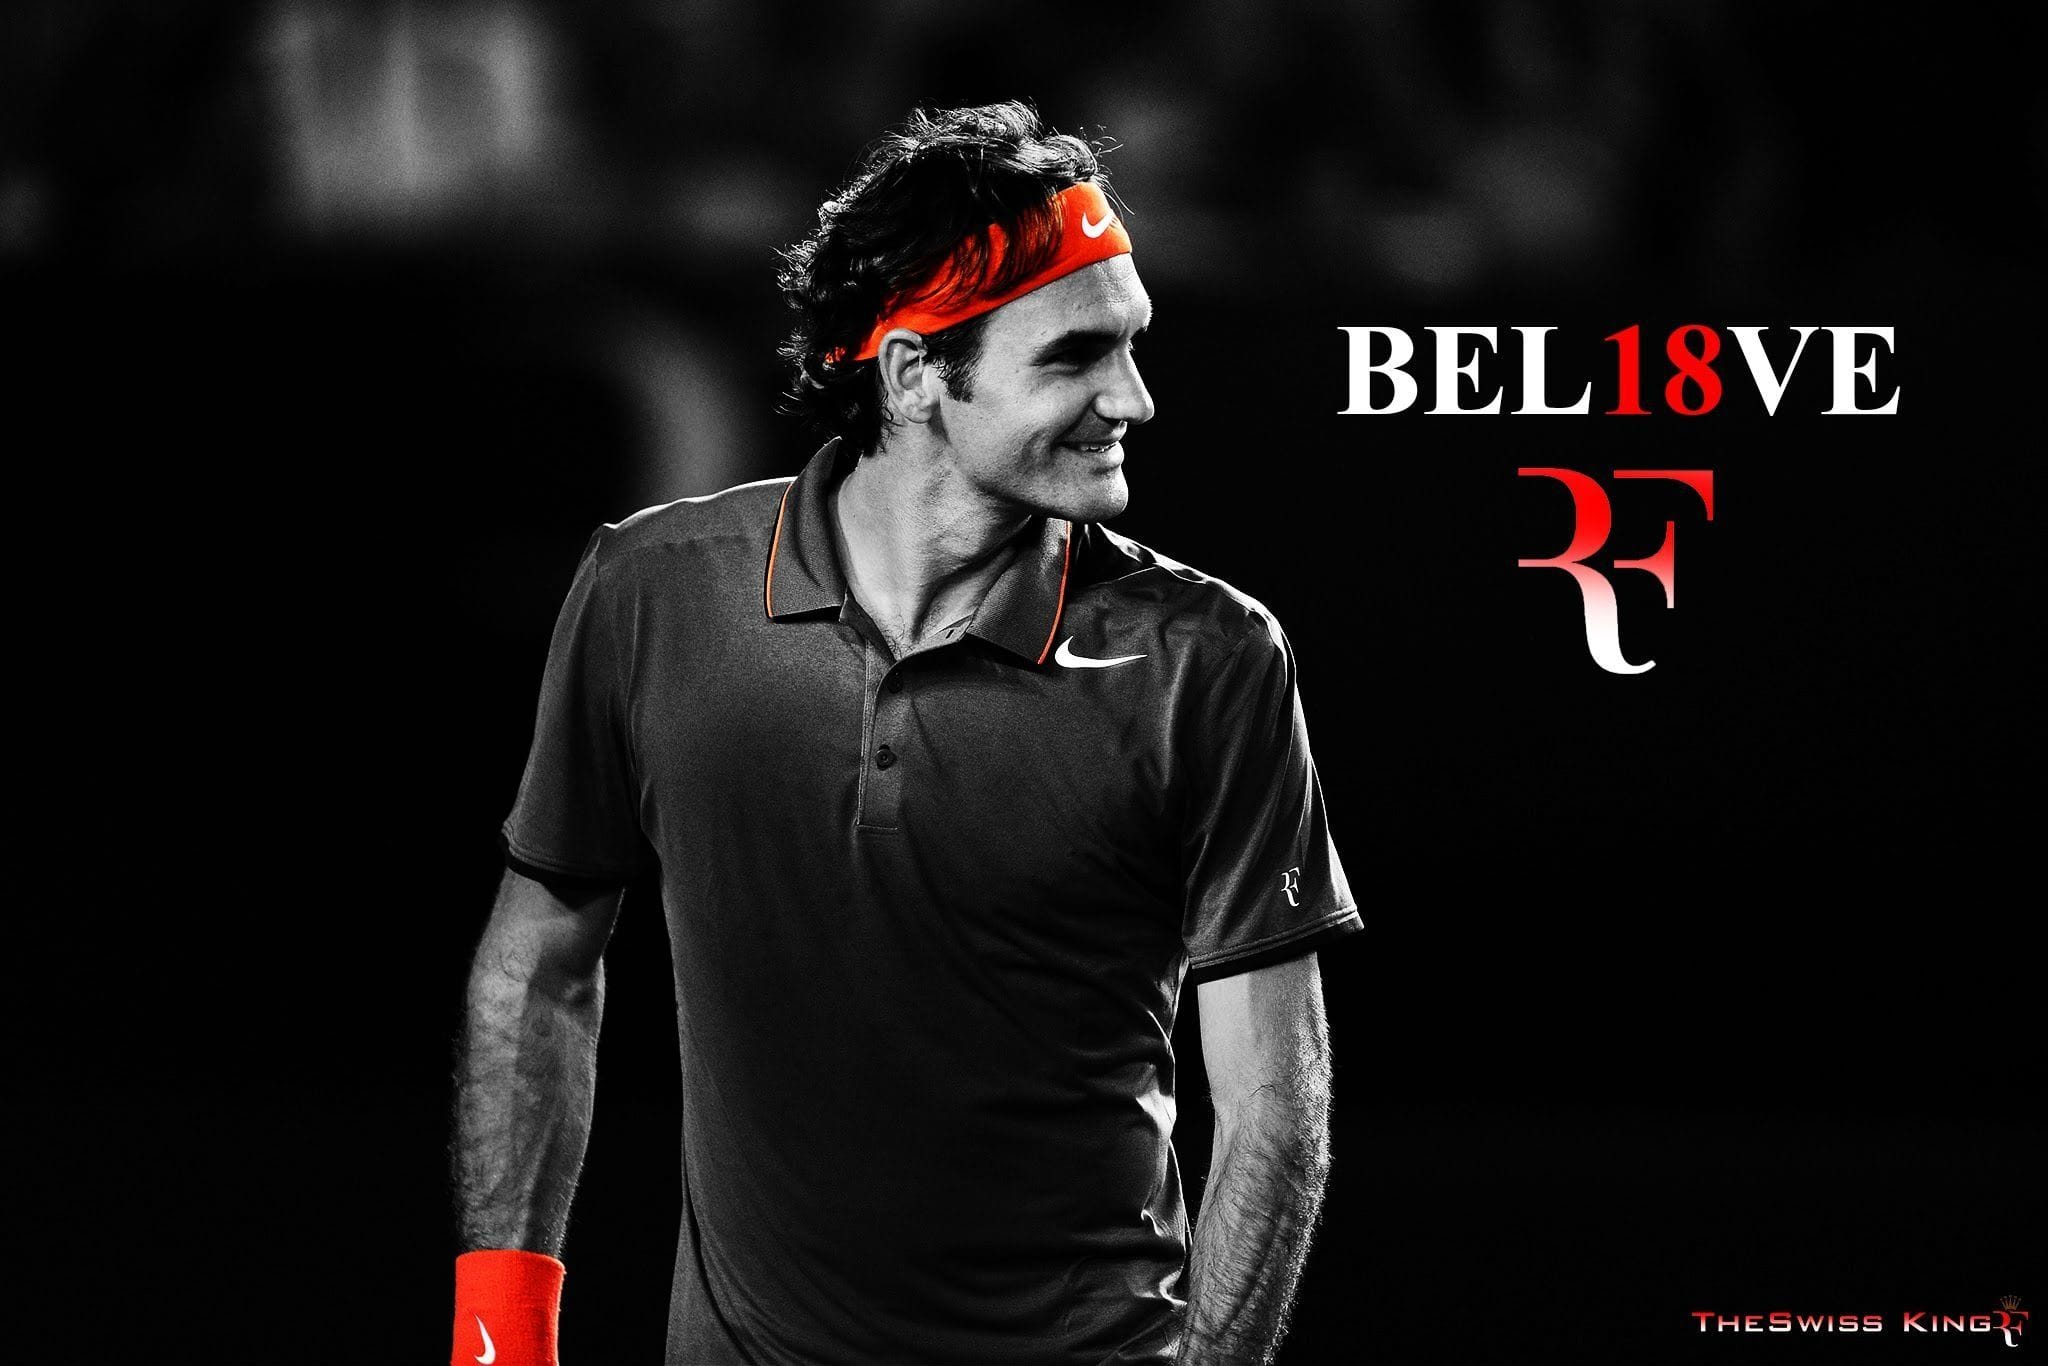 Roger federer wallpapers wallpaper cave roger federer hd desktop wallpapers 7wallpapers voltagebd Image collections